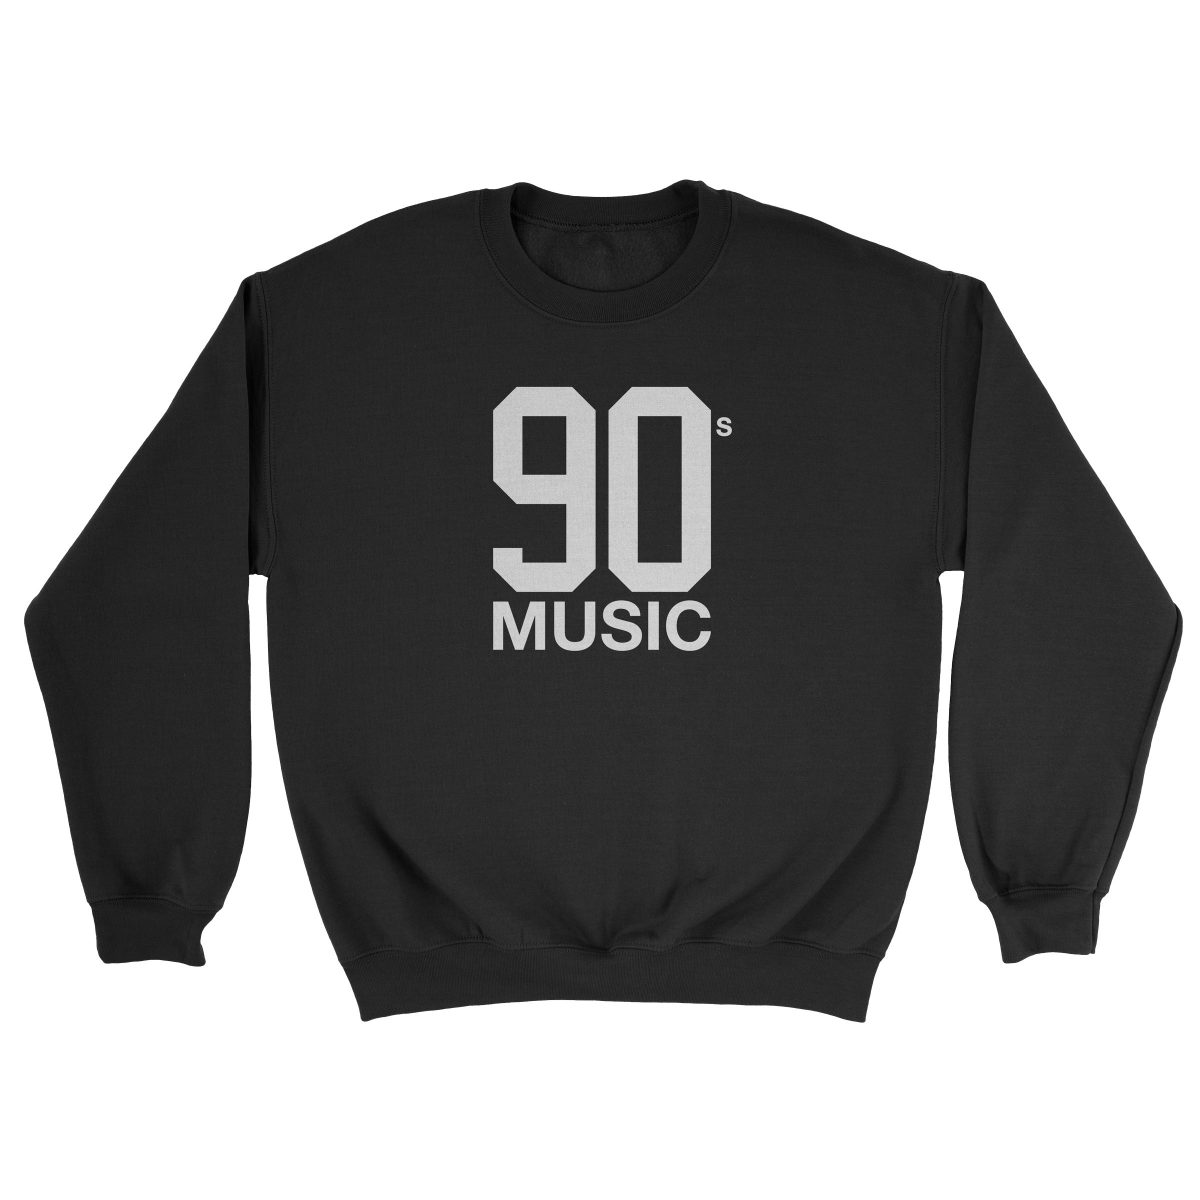 90s MUSIC black crew sweatshirt by kikicutt